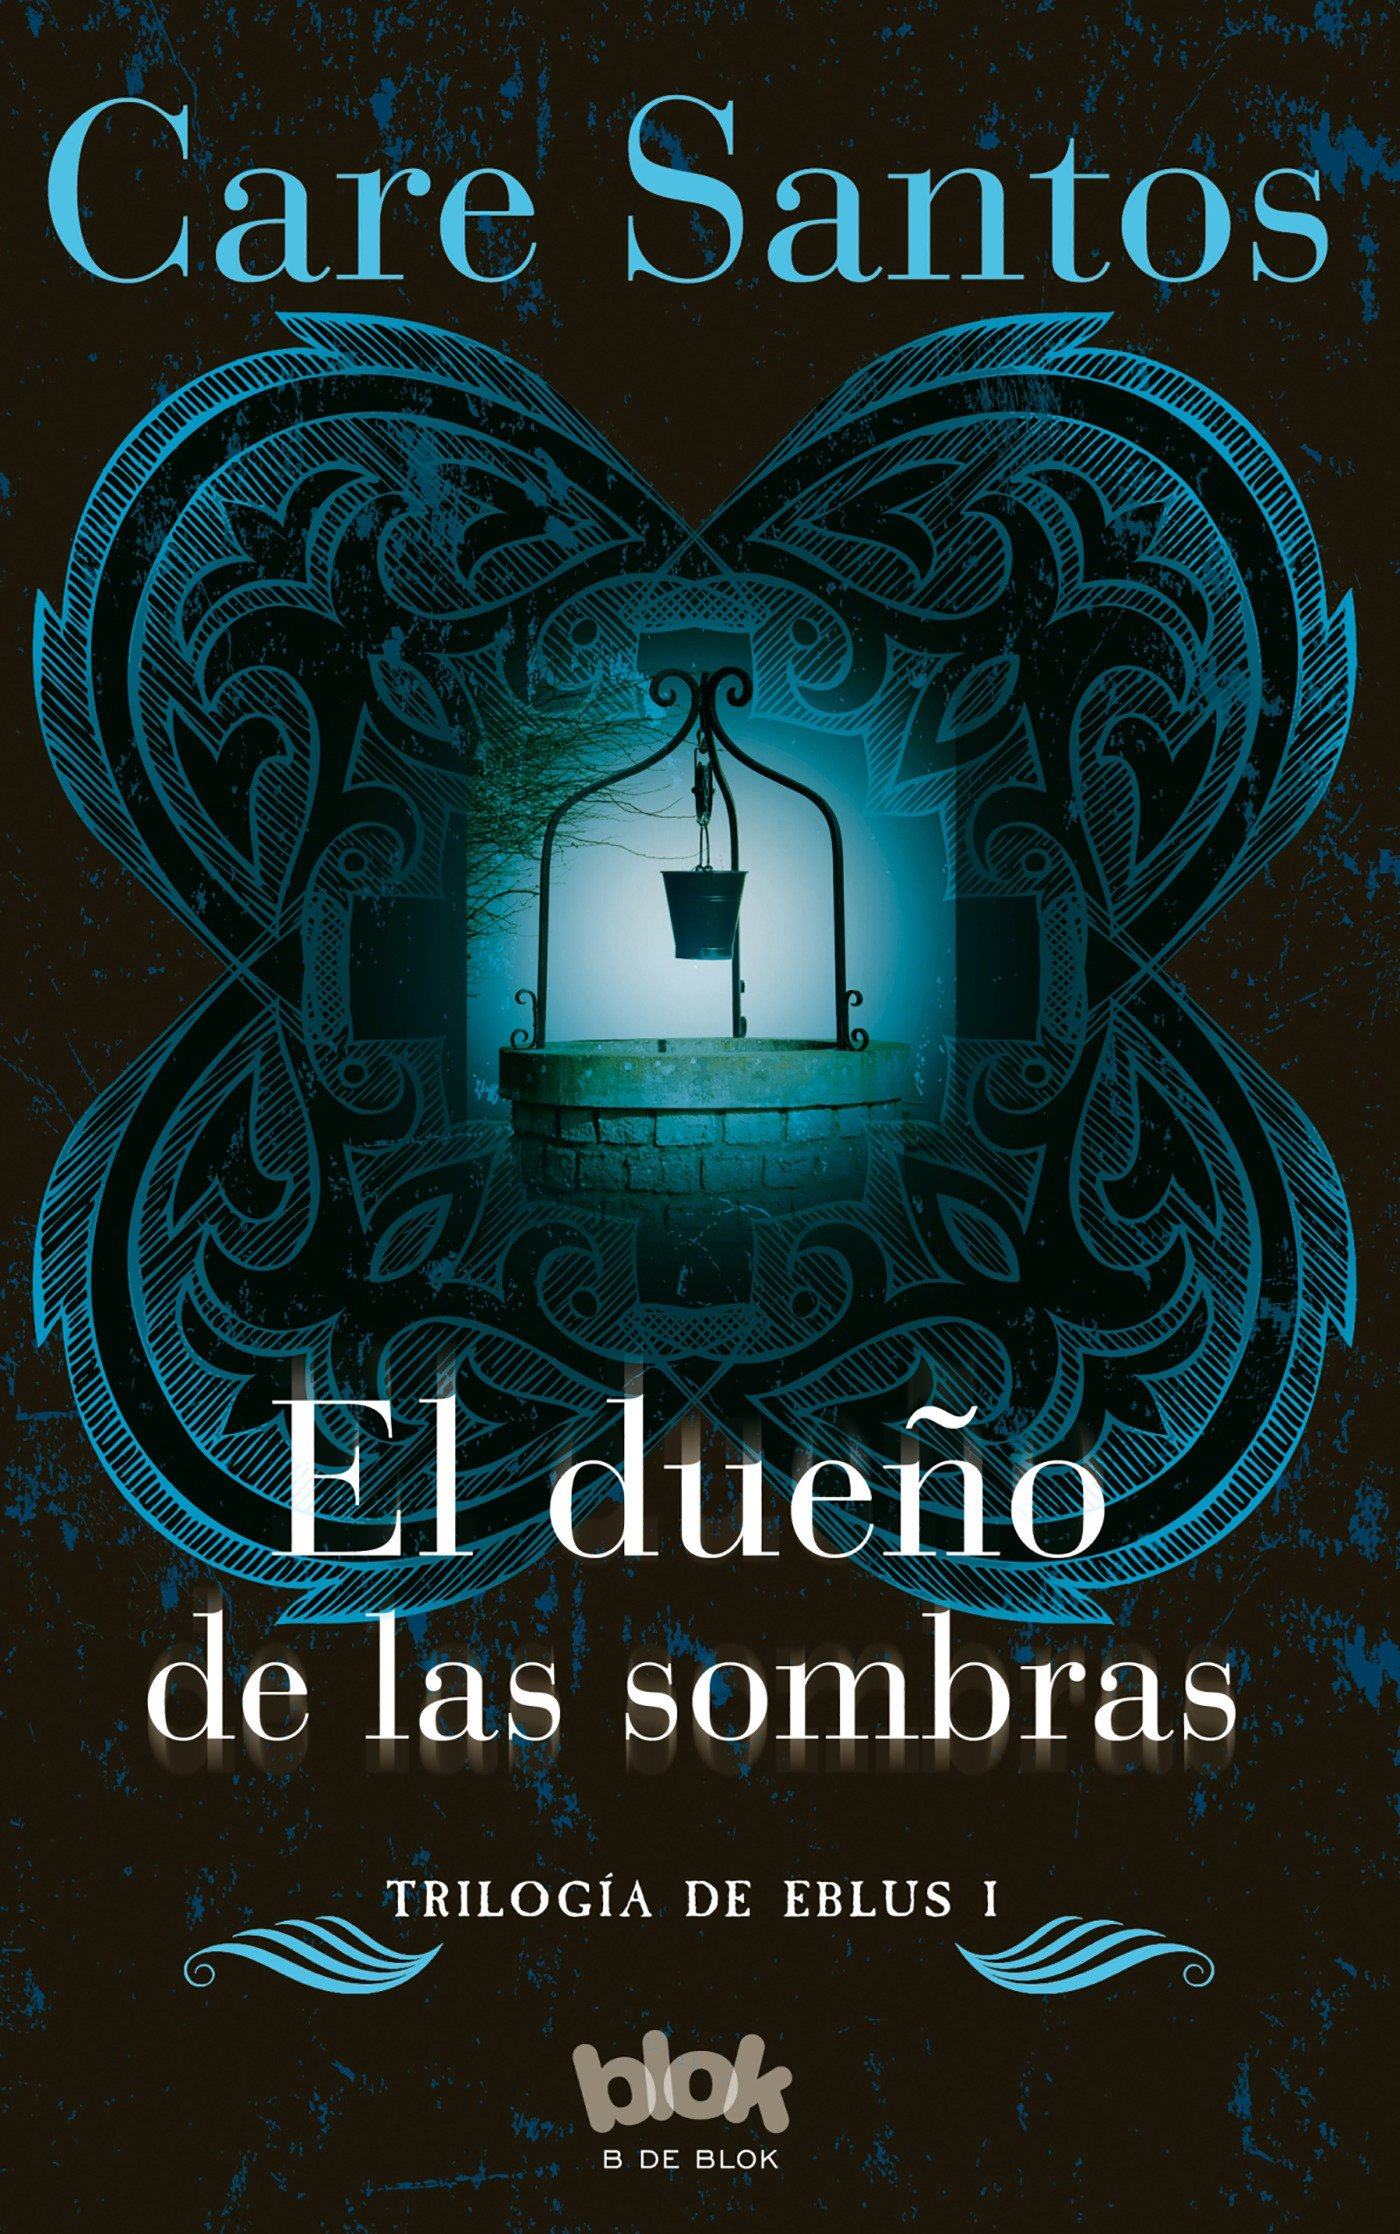 Download El dueño de las sombras / The Lord of the Shadows (Trilogía de Eblus) (Spanish Edition) PDF